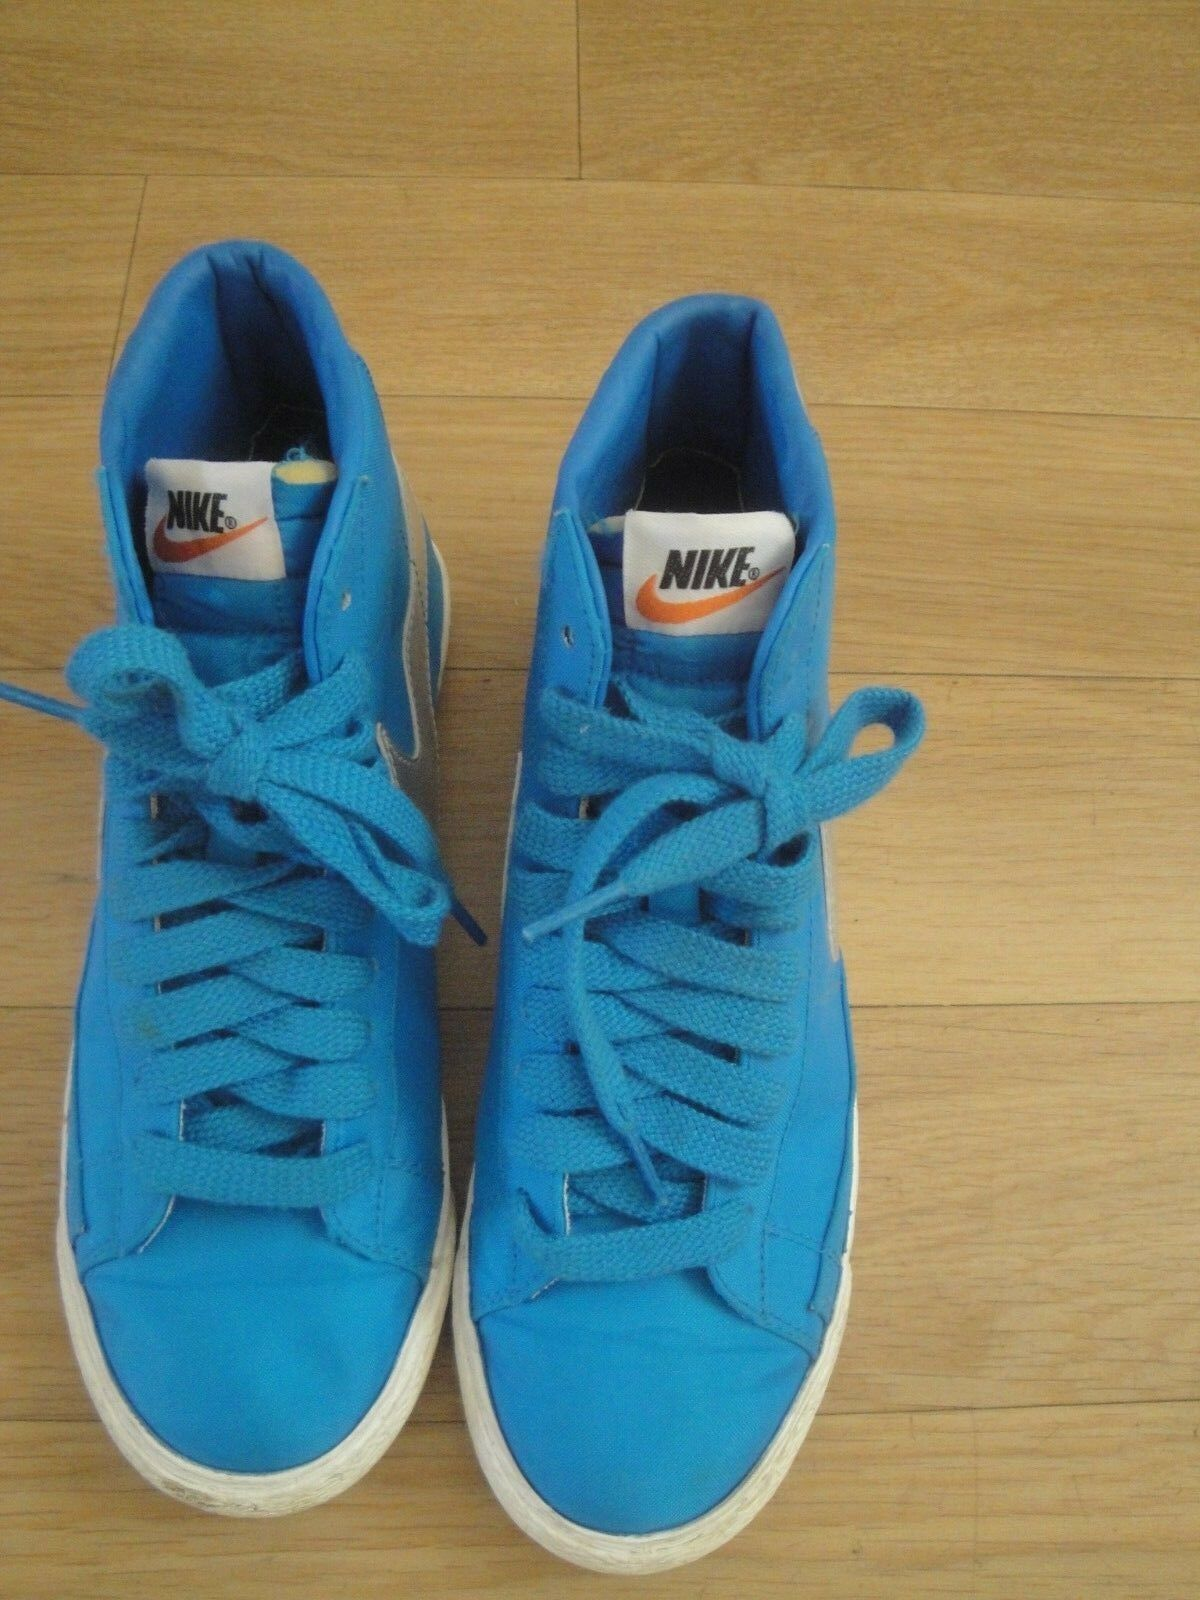 NIKE TRAINERS SHOES SIZE BLUE UNISEX HI TOP